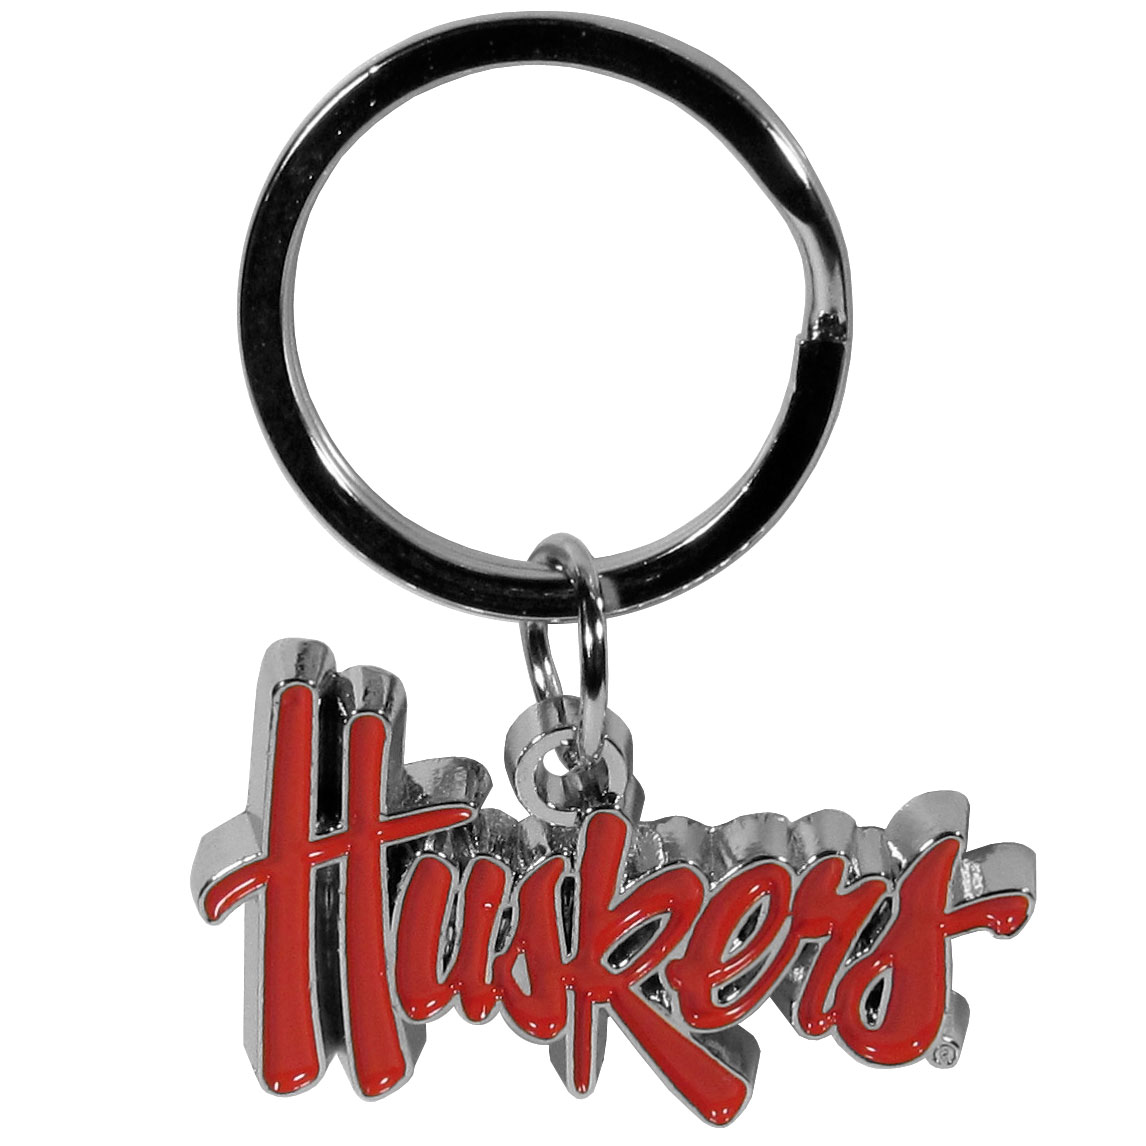 Nebraska Cornhuskers Enameled Key Chain - Our officially licensed chrome key chain have exceptional 3D detail that really sets this key chain apart from other Nebraska Cornhuskers key chains. The logo is finely carved and enamel filled with a high polish chrome finish.